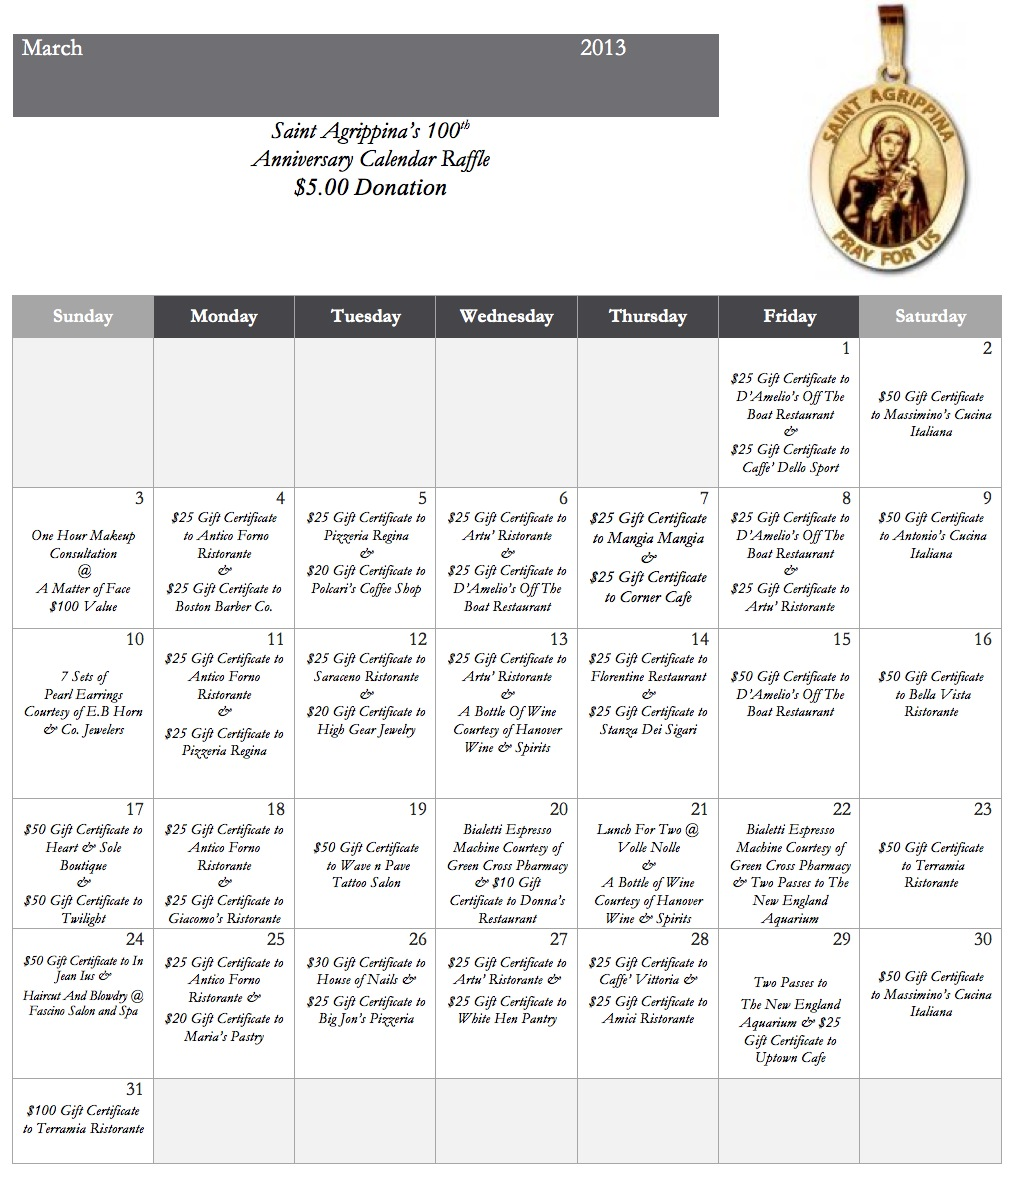 Monthly Calendar Raffle : March calendar style raffle for th anniversary of st